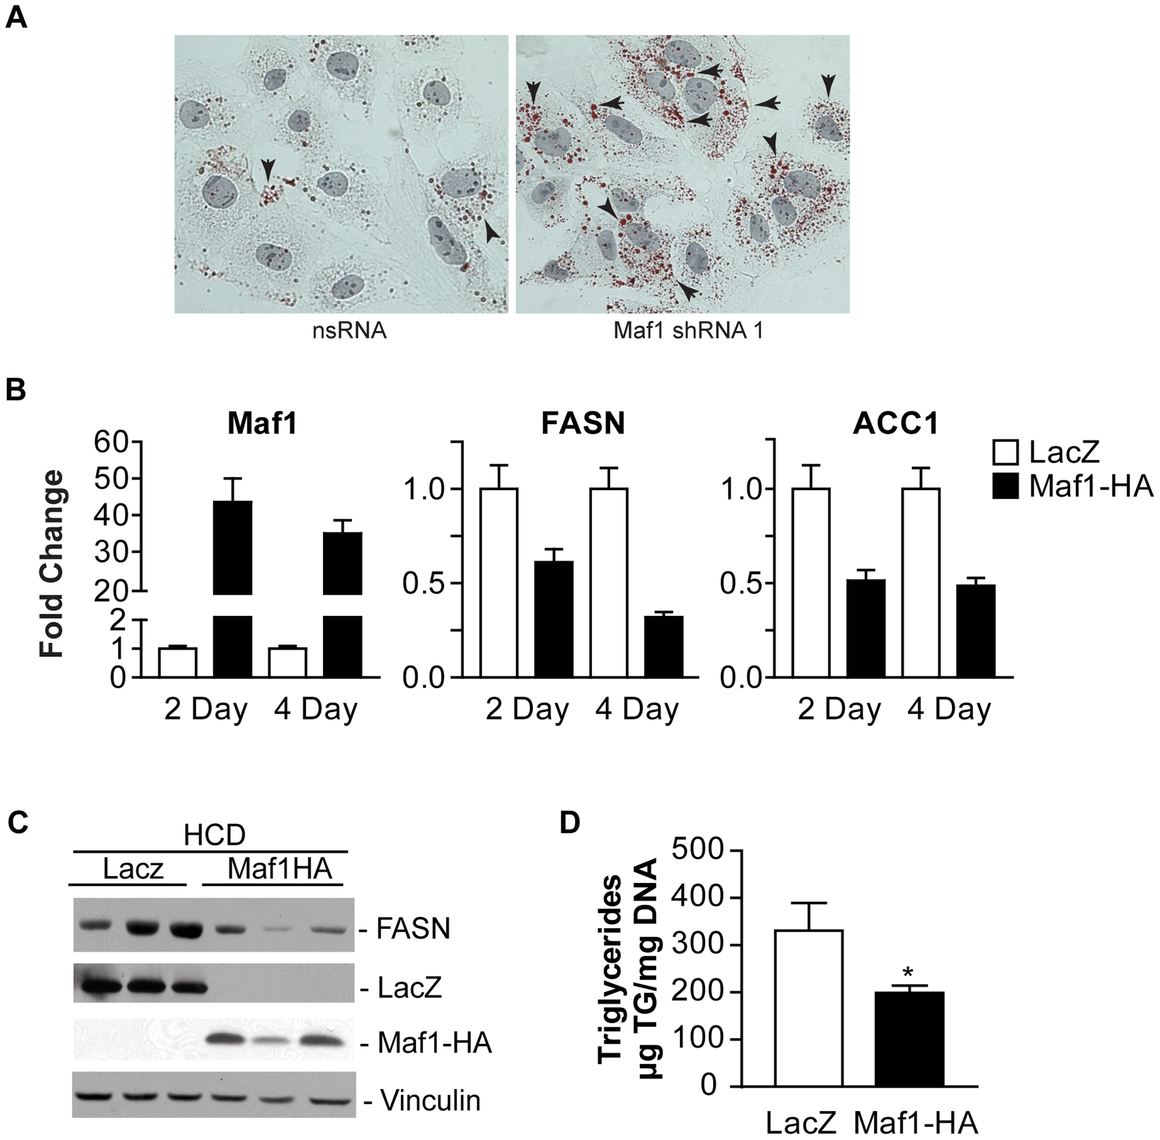 Maf1 controls intracellular lipid accumulation and de novo lipogenesis.